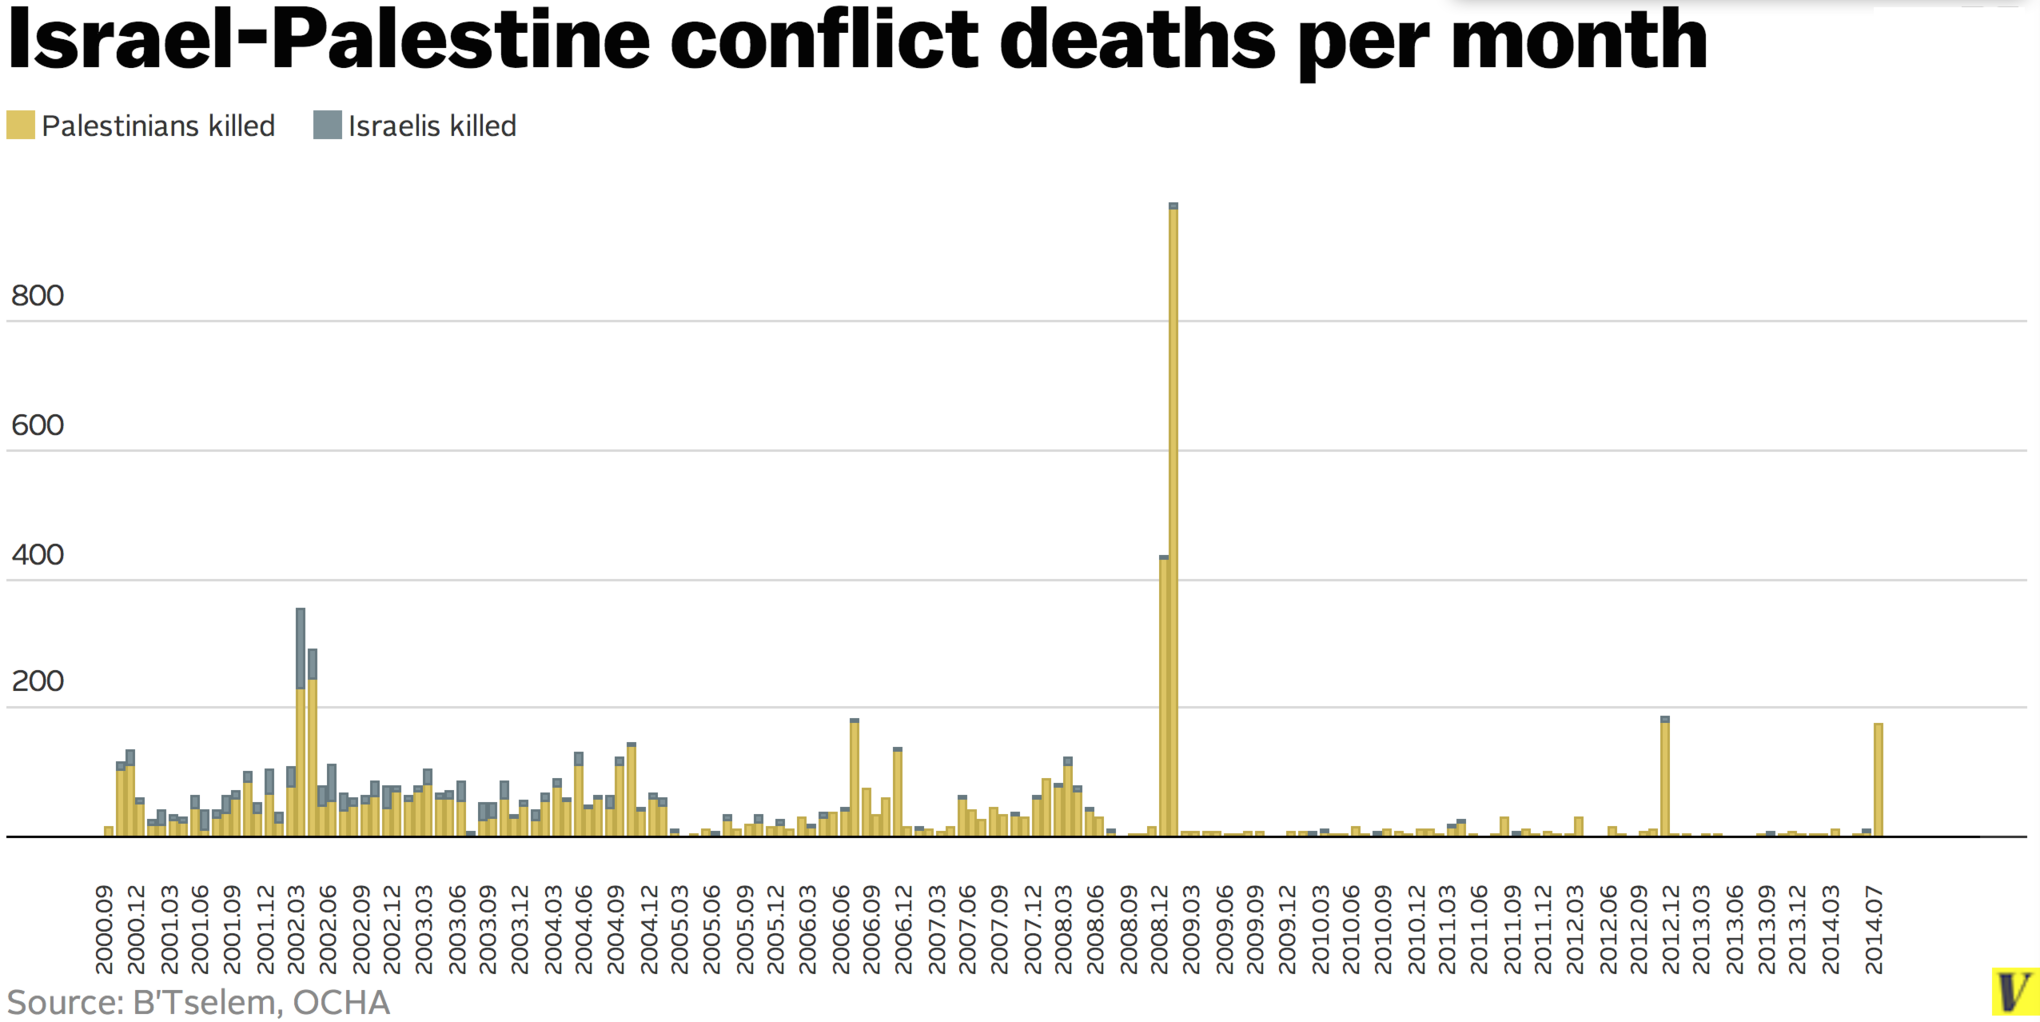 Source, Vox.com.  http://www.vox.com/2014/7/14/5898581/chart-israel-palestine-conflict-deaths . Click for a larger version